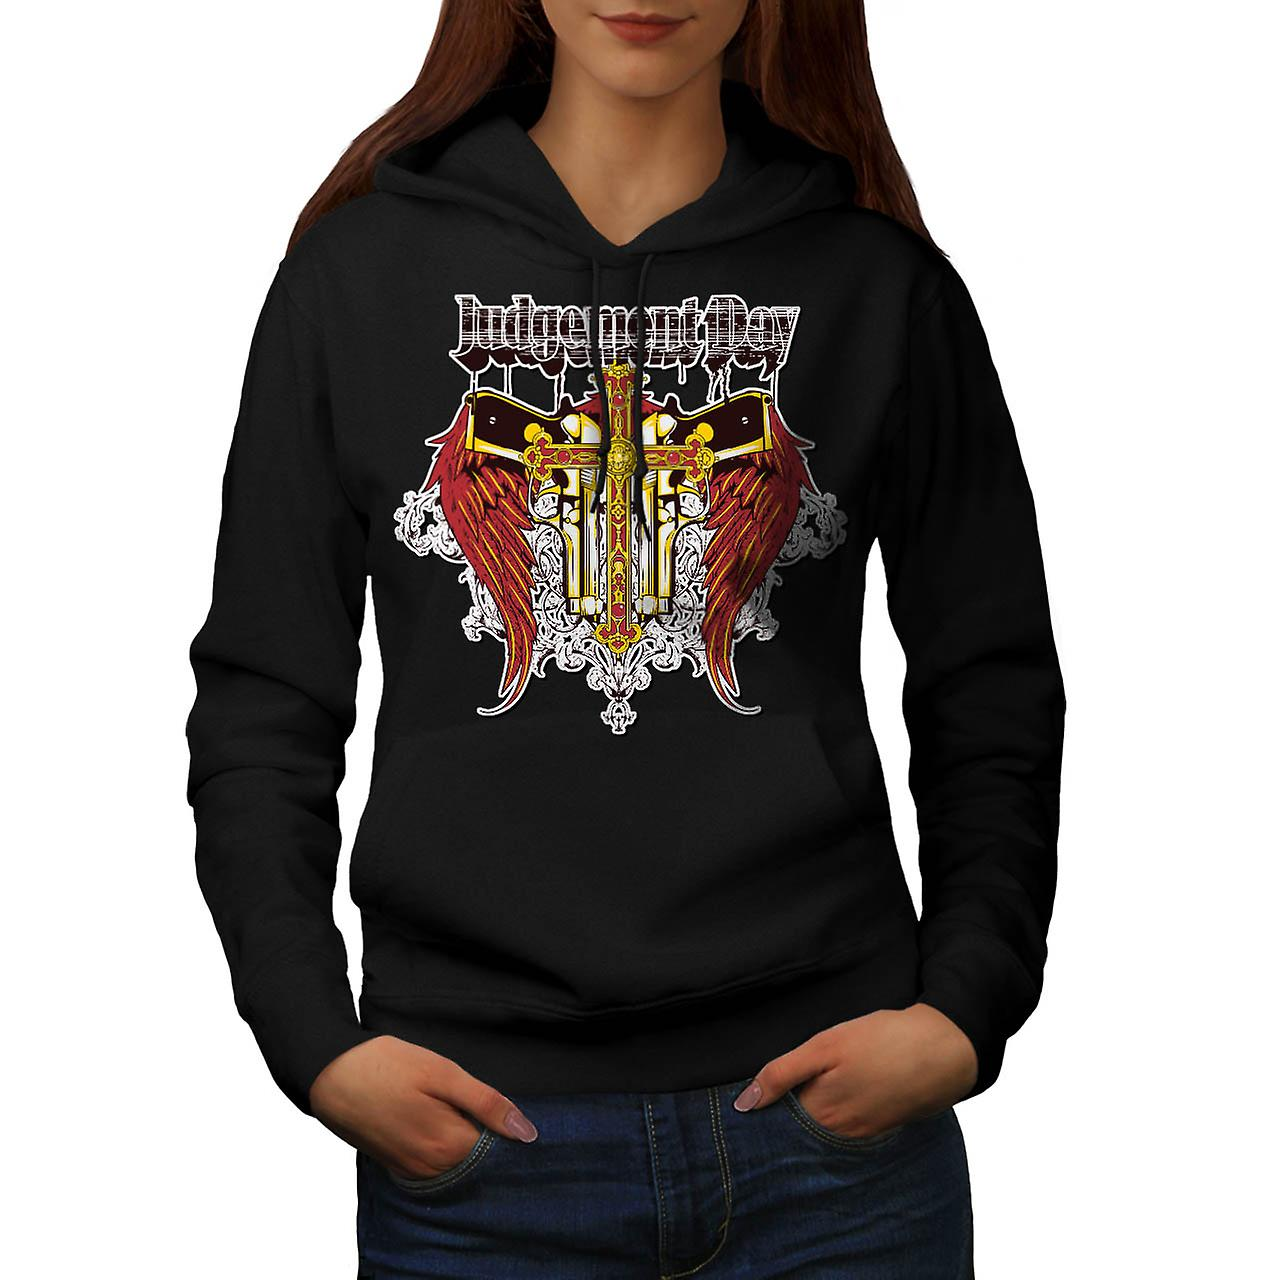 Judgement Day Hell Devils Lair Women Black Hoodie | Wellcoda